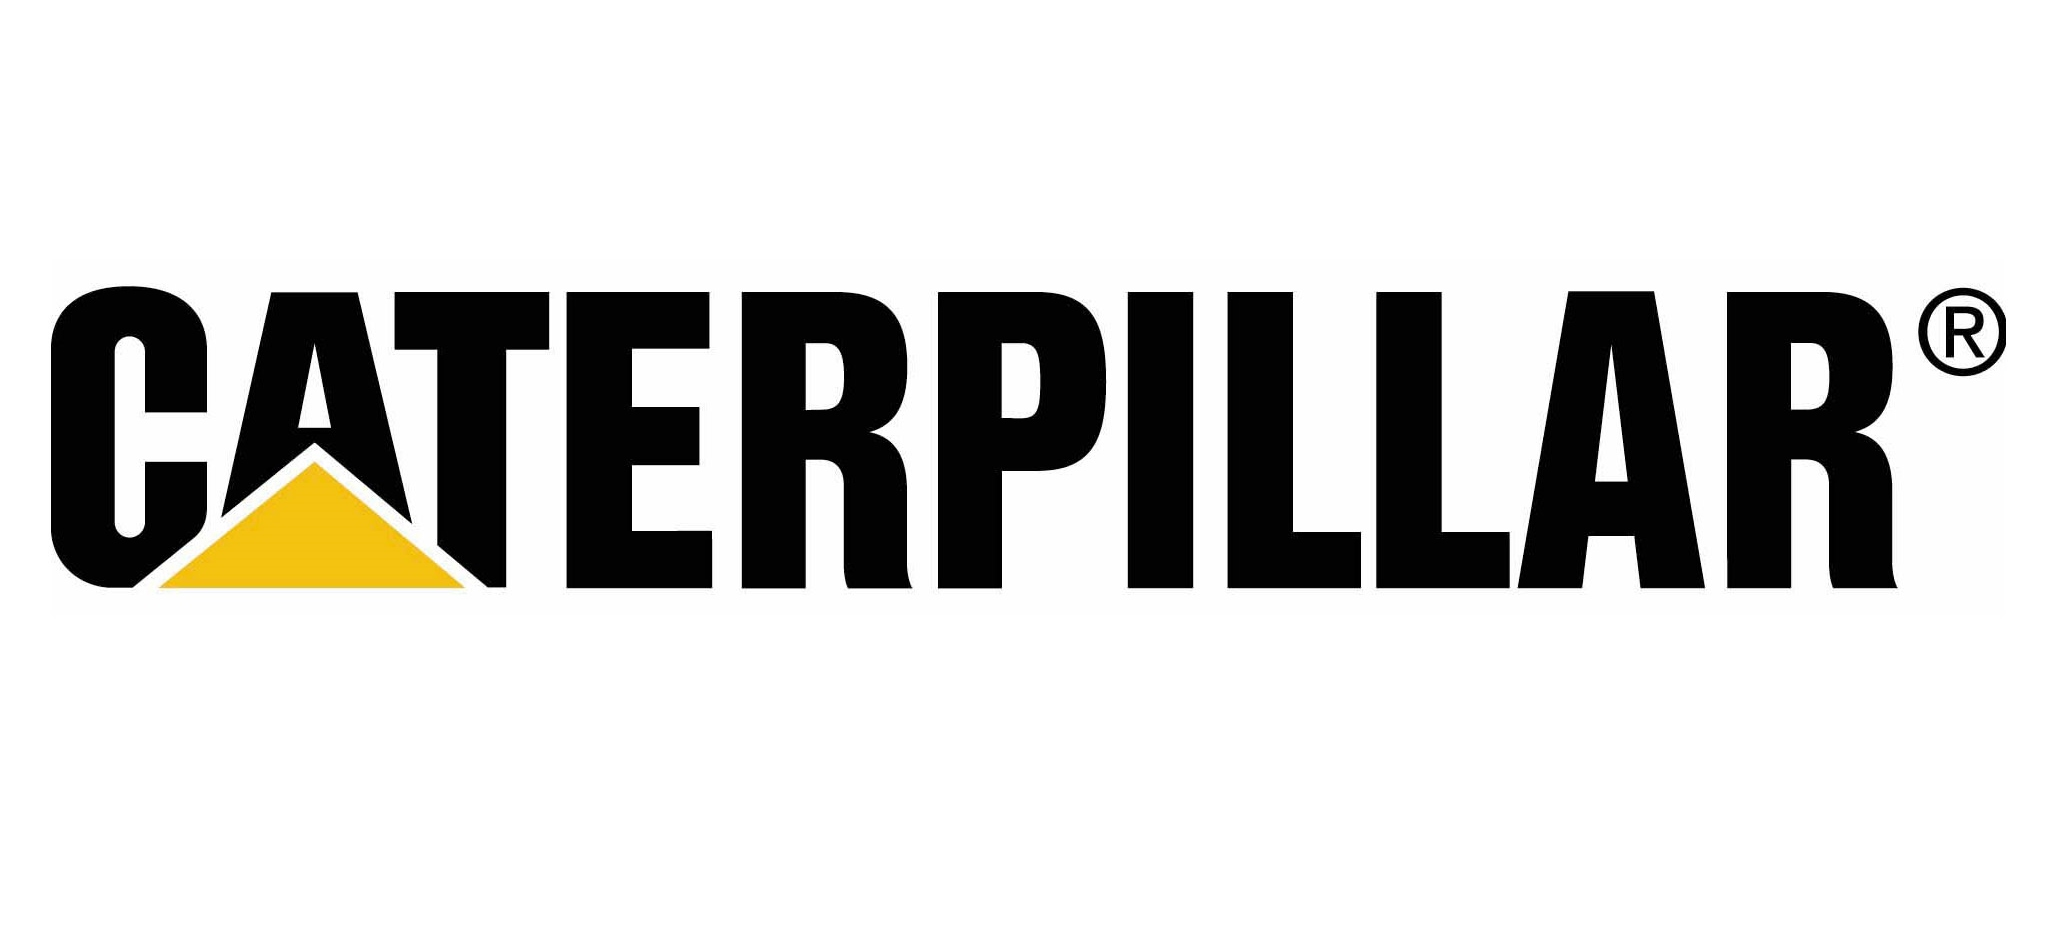 Caterpillar-logo (2)